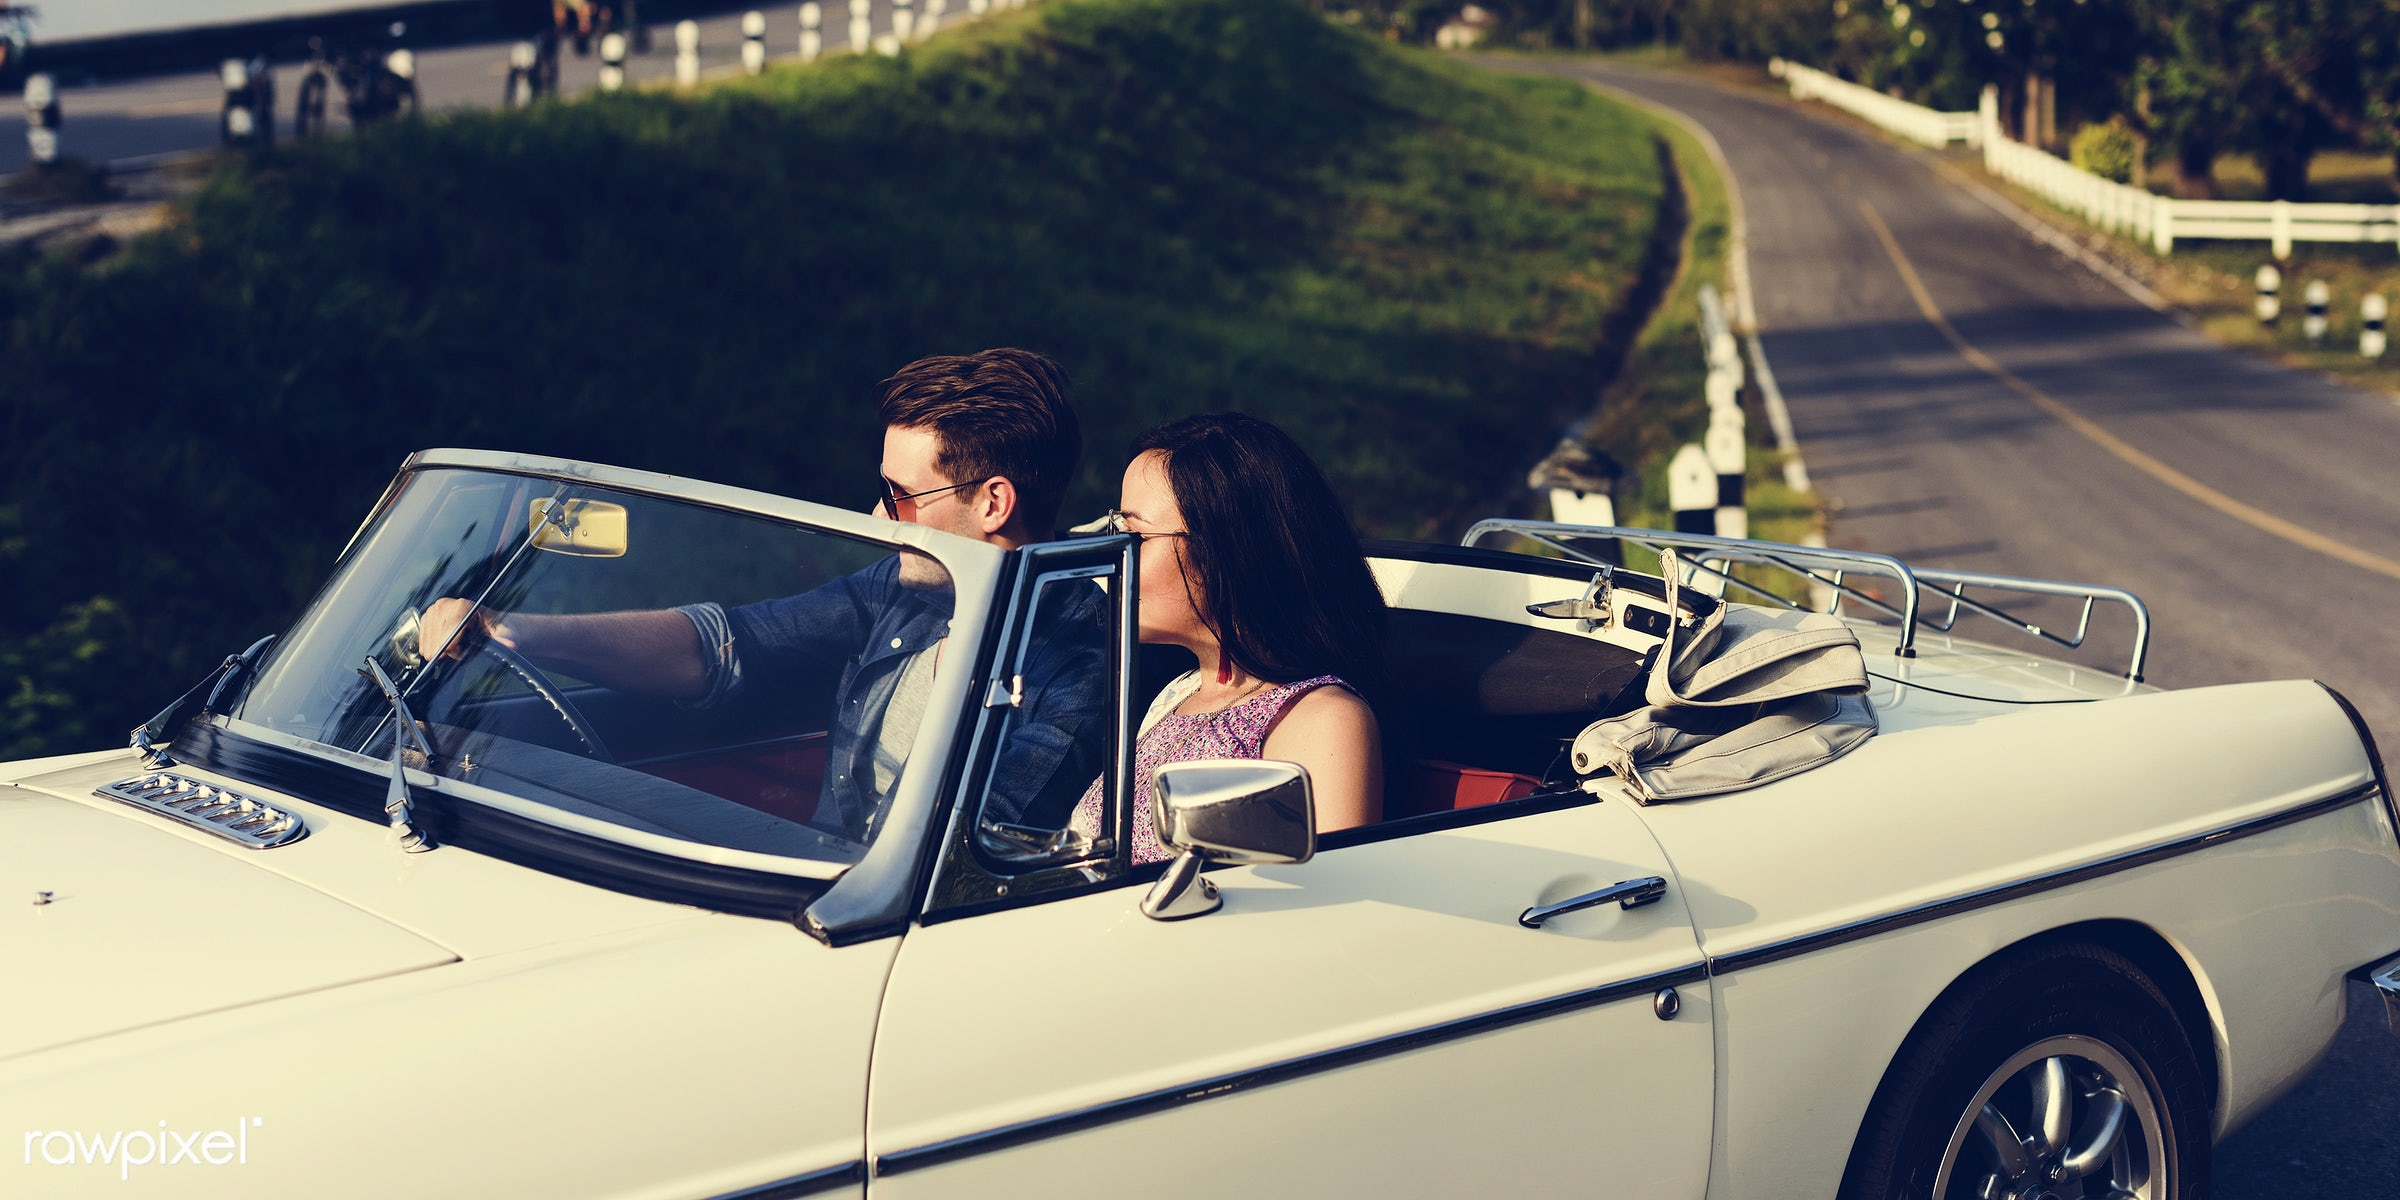 car, person, vehicle, driving, travel, recreation, people, together, wanderlust, love, adventure, life, nature, road trip,...